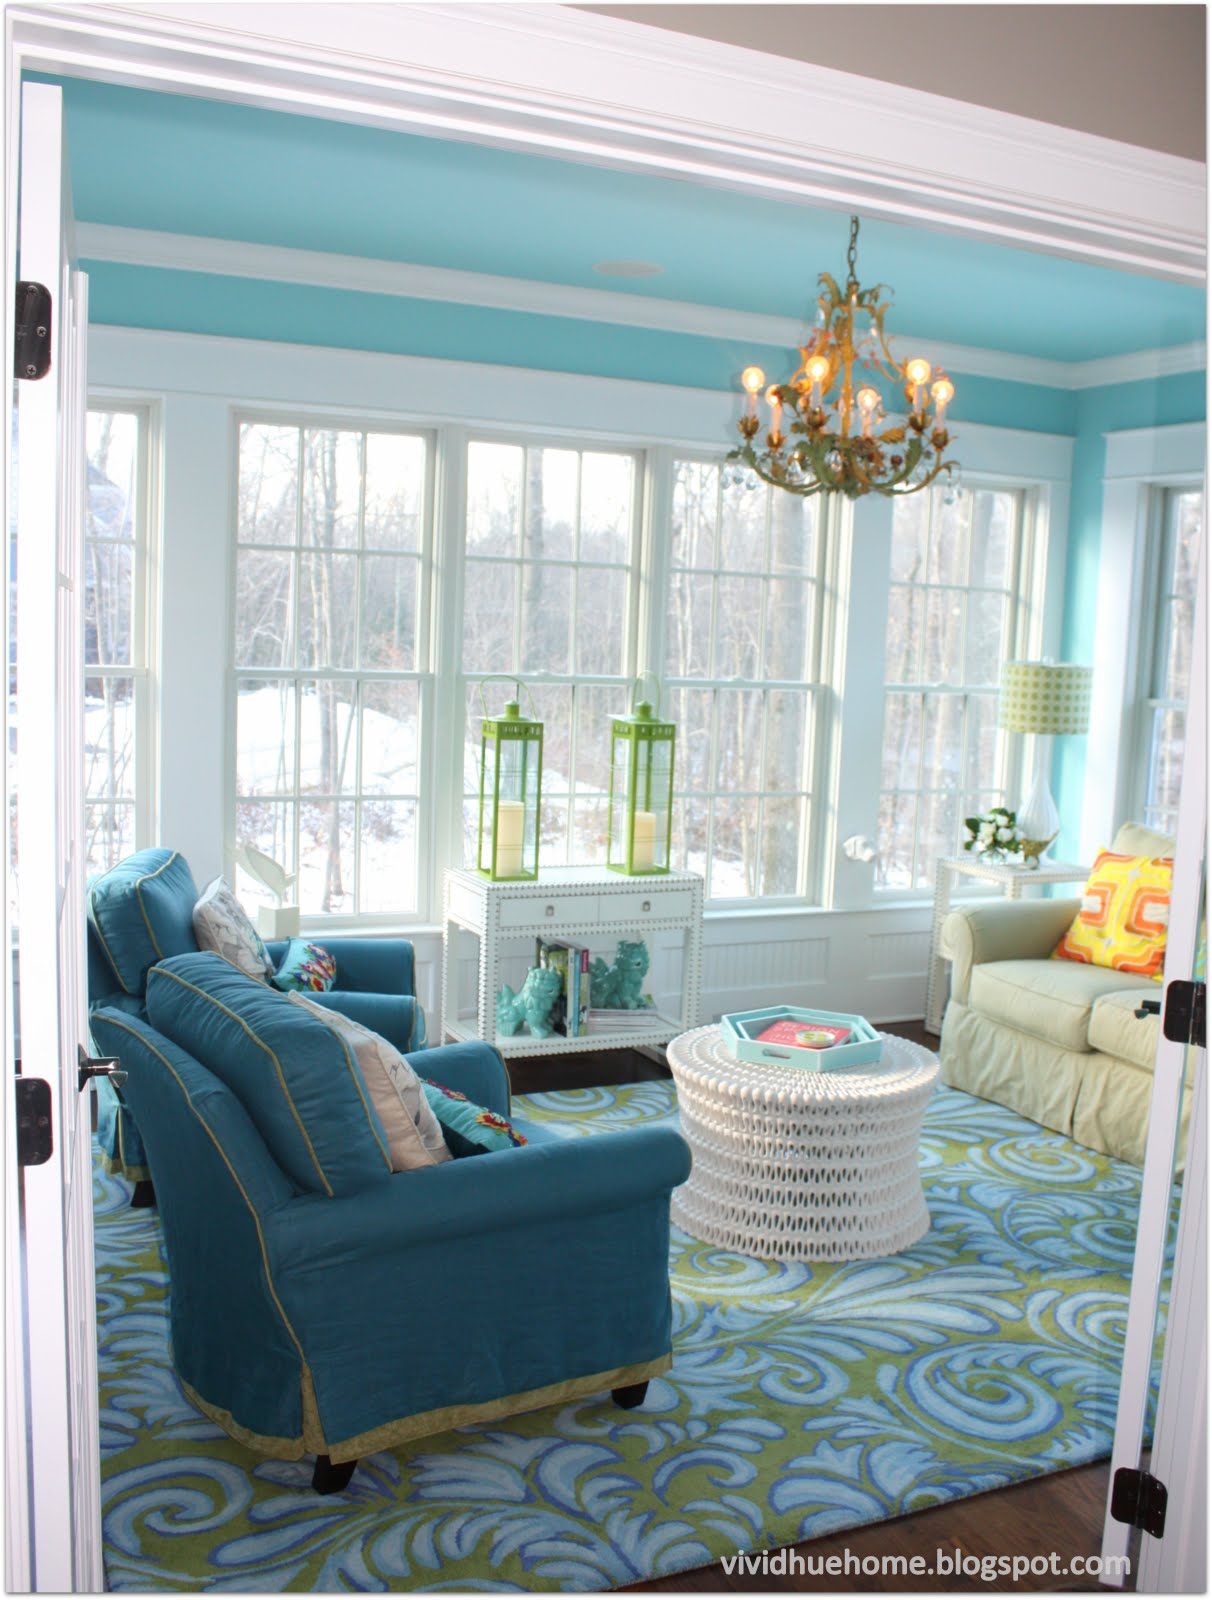 Vivid Hue Home House Tour Sun Room